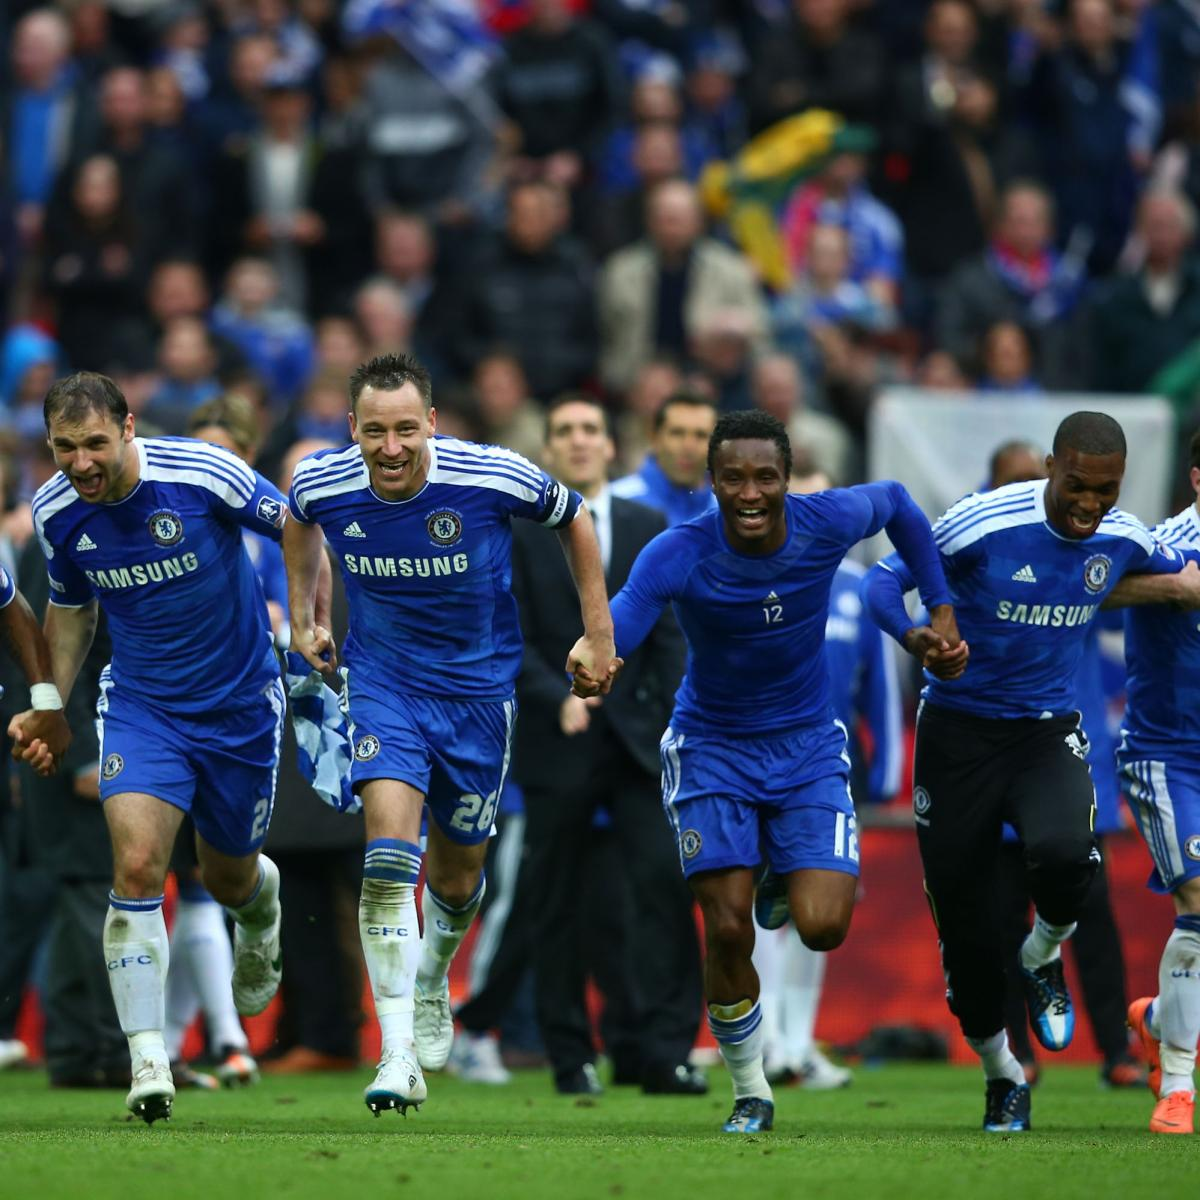 Champions League Final 2012: FA Cup Final 2012: How Victory Primes Chelsea For